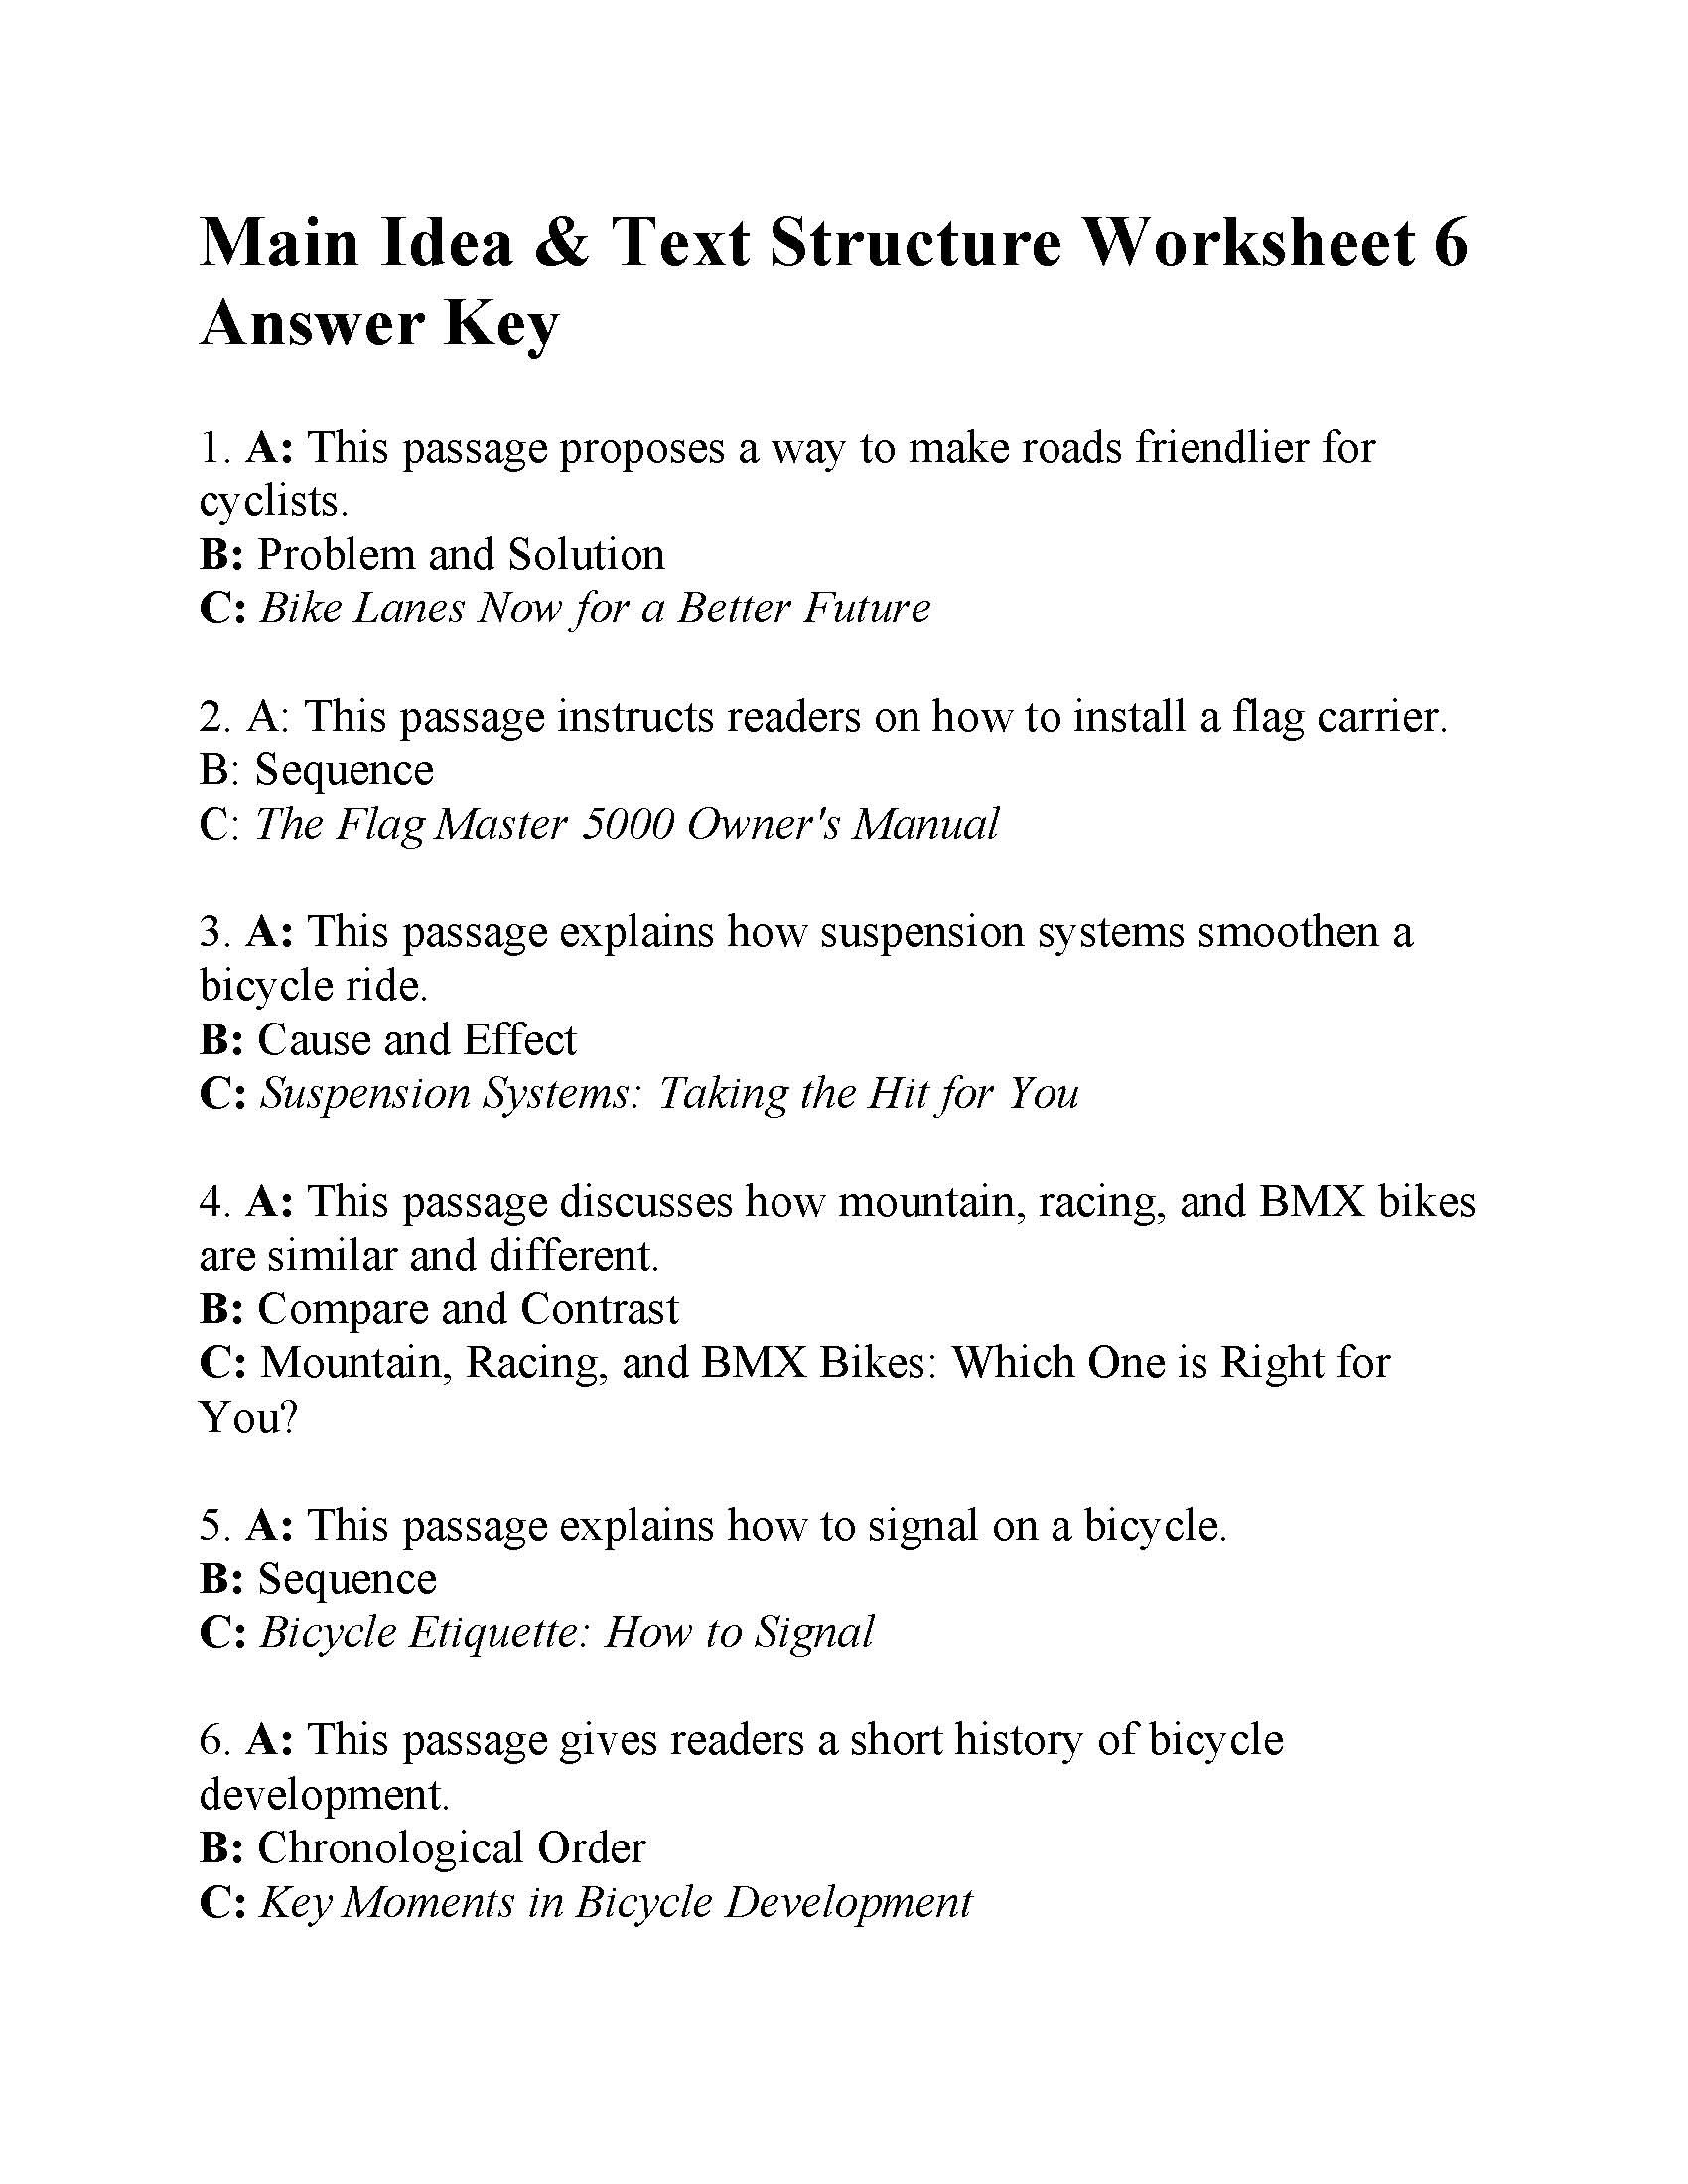 Text Structure Worksheets Grade 4 Main Idea and Text Structure Worksheet Answers Ereading